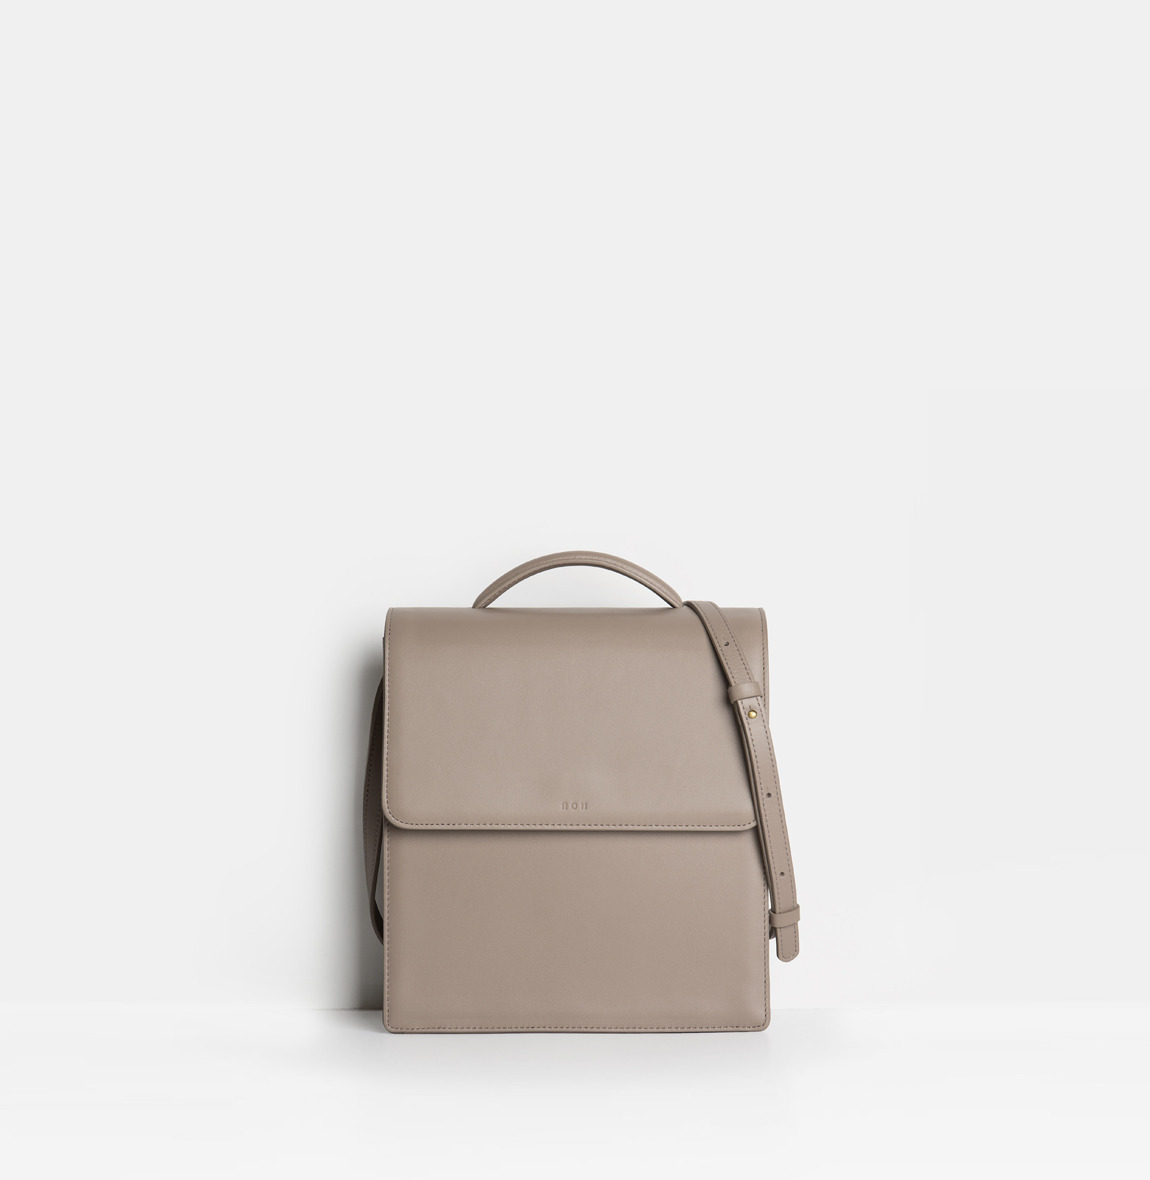 ROH Satchel bag Beige